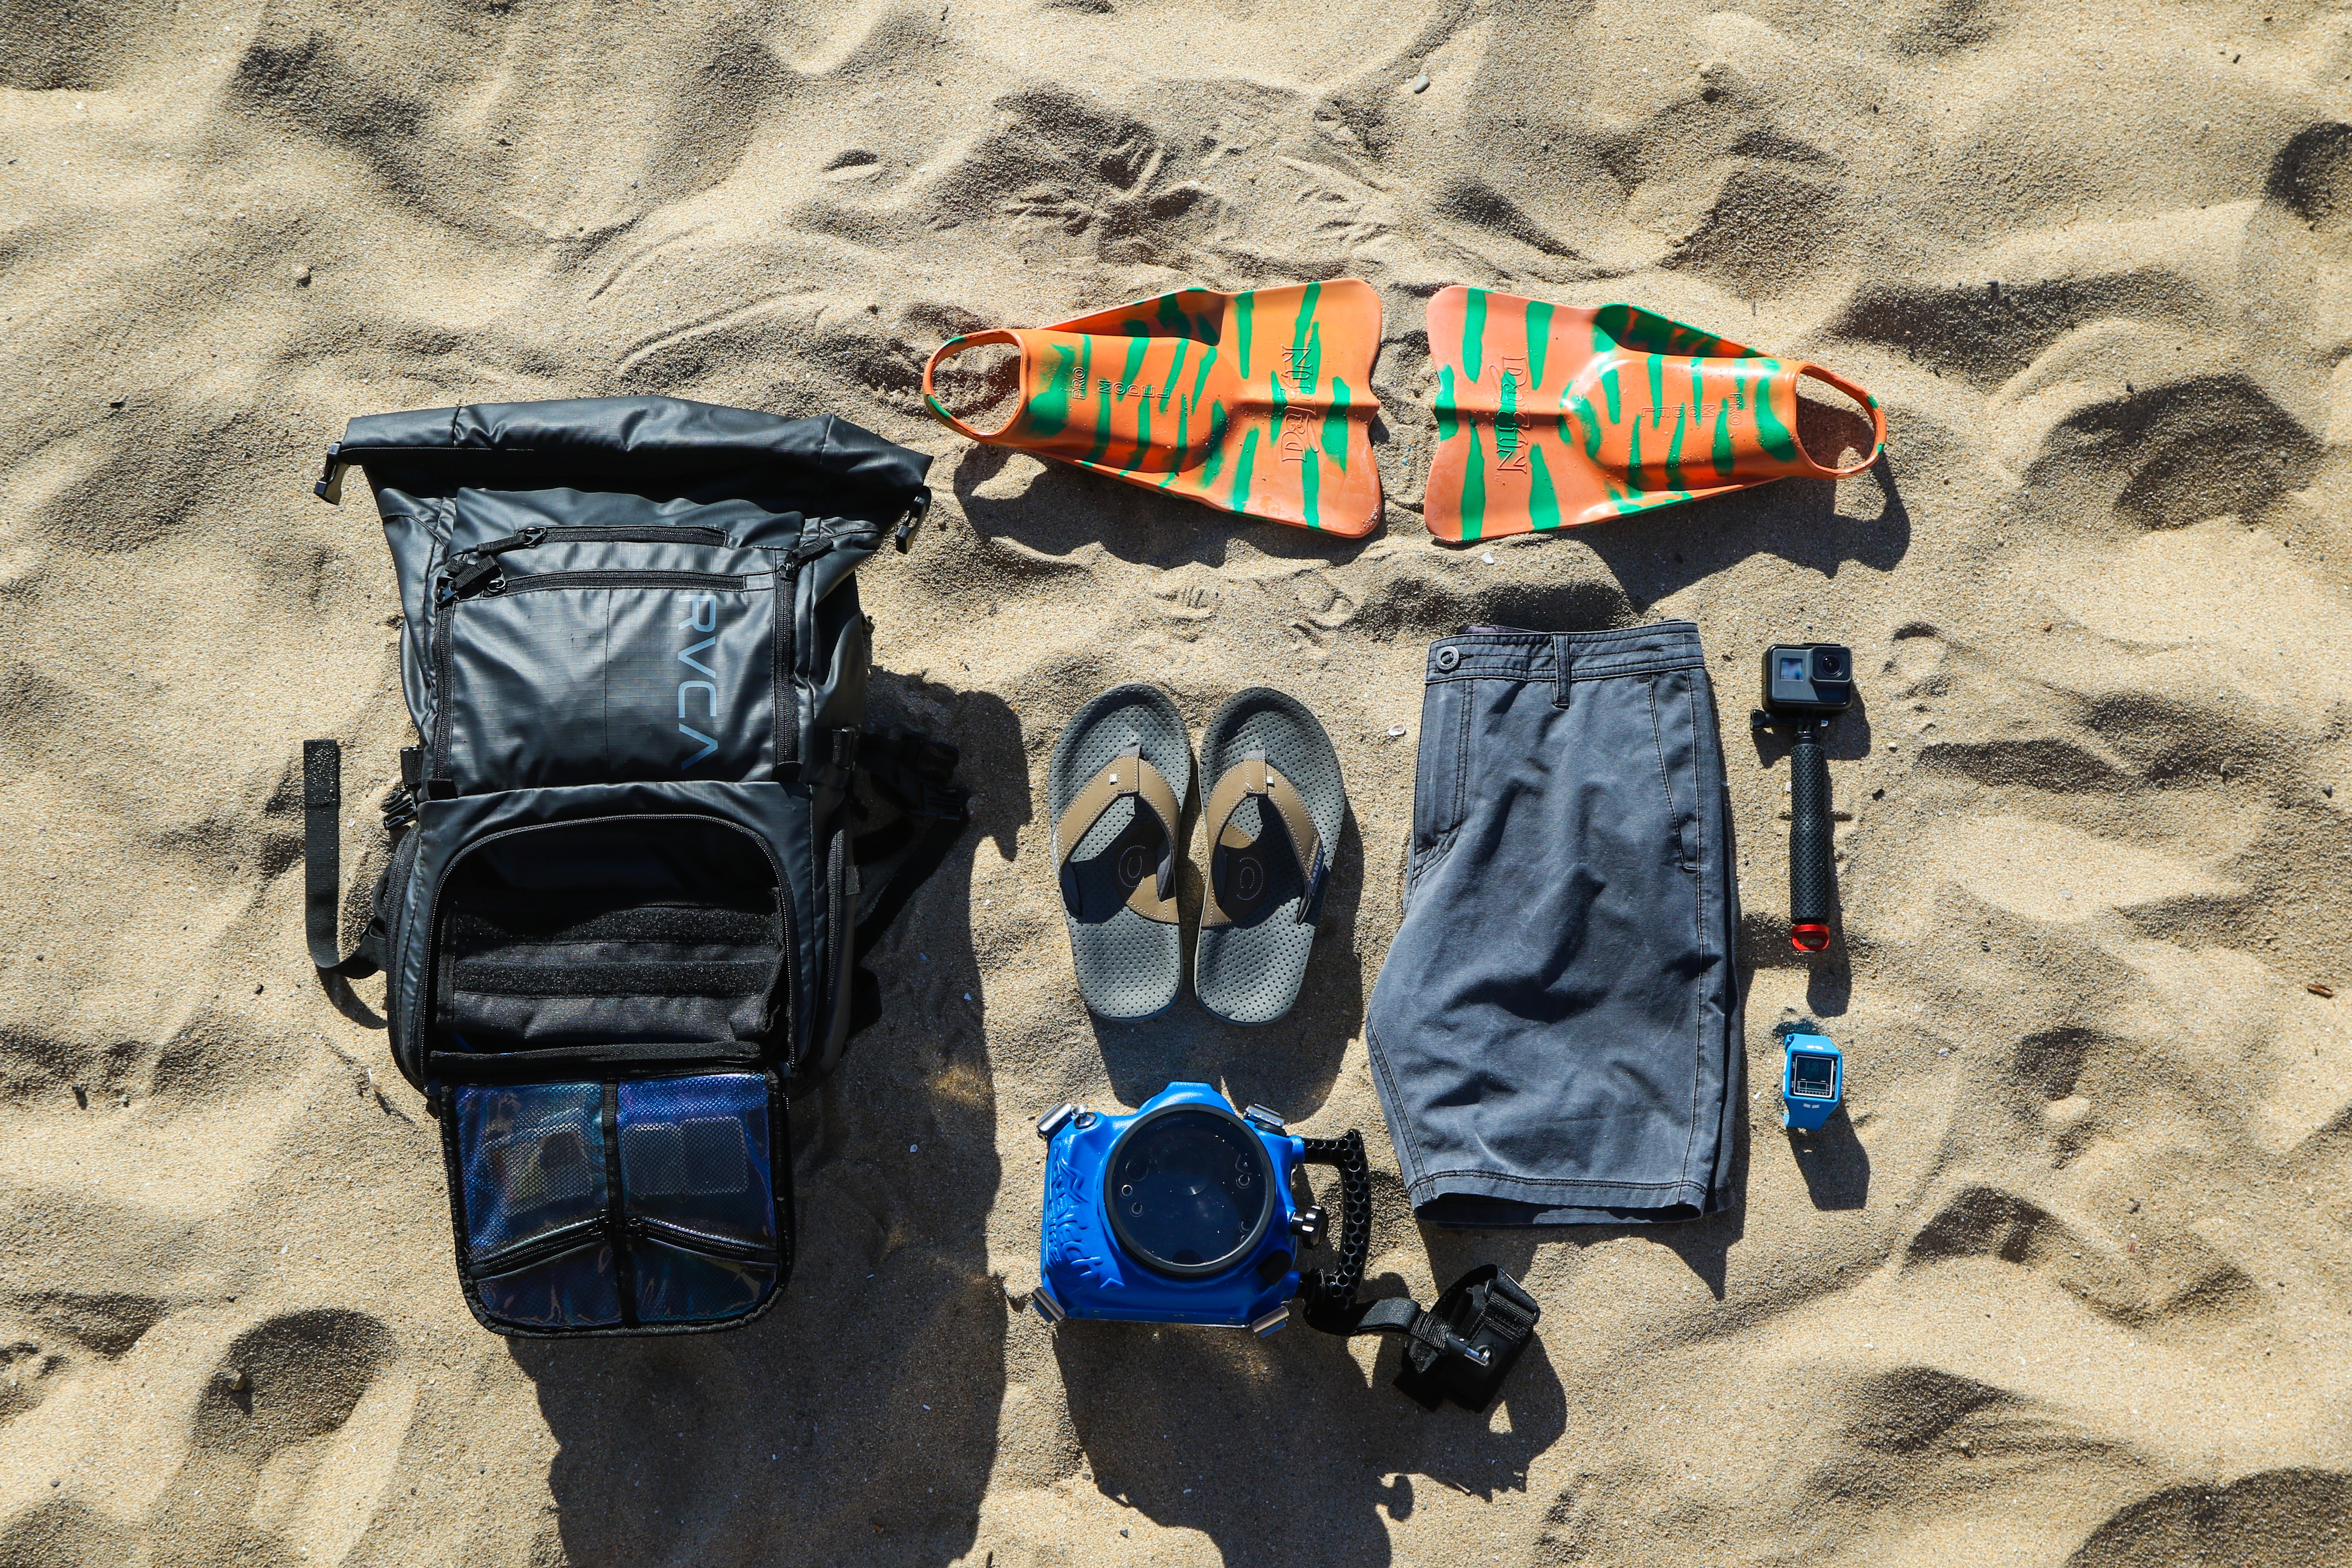 Backpack, shorts, flippers, fins, underwater camera and a GoPro at the sand beach